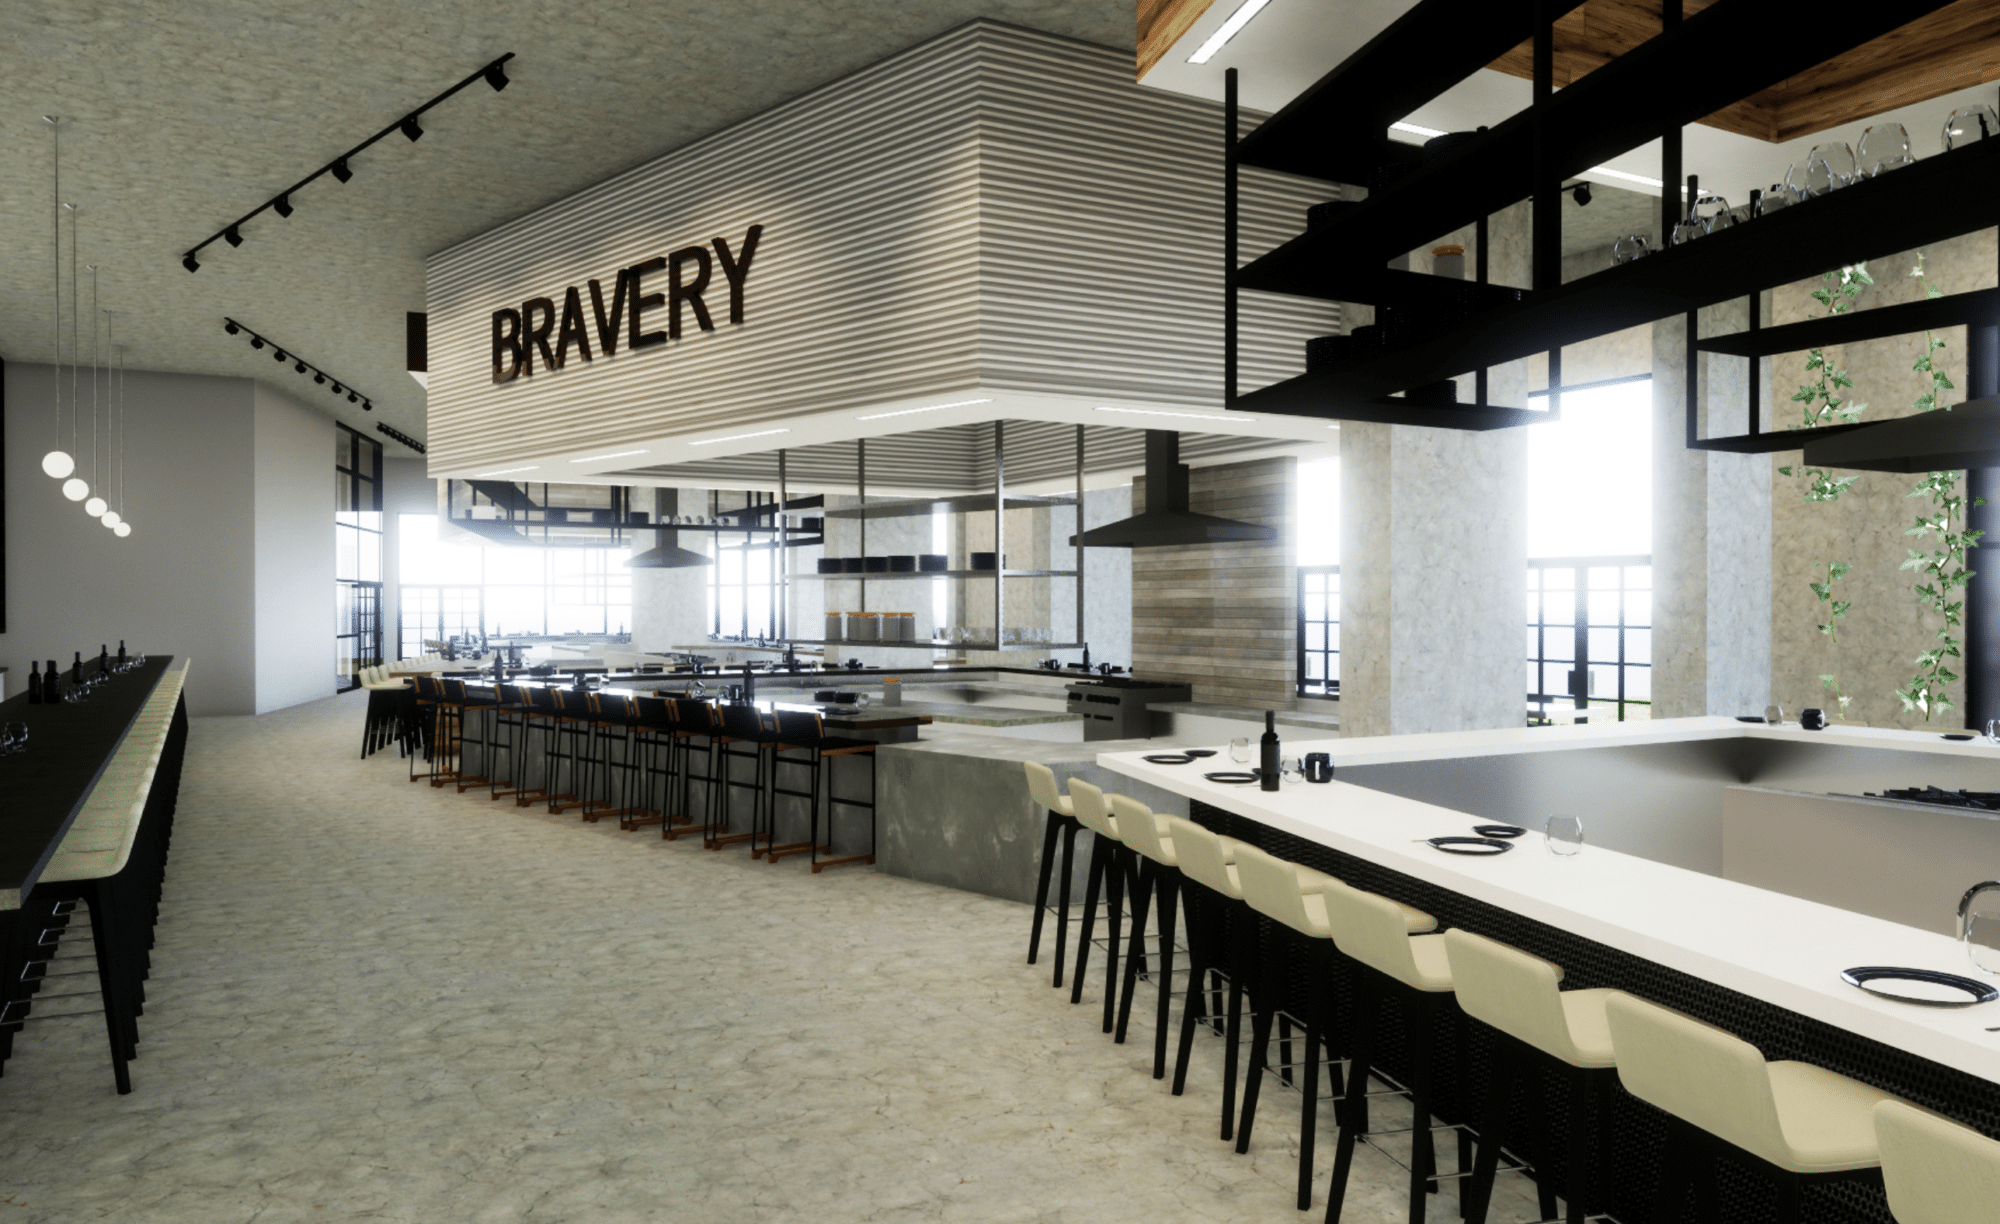 Bravery Chef Hall Houston Food Scene Porcelain Countertops